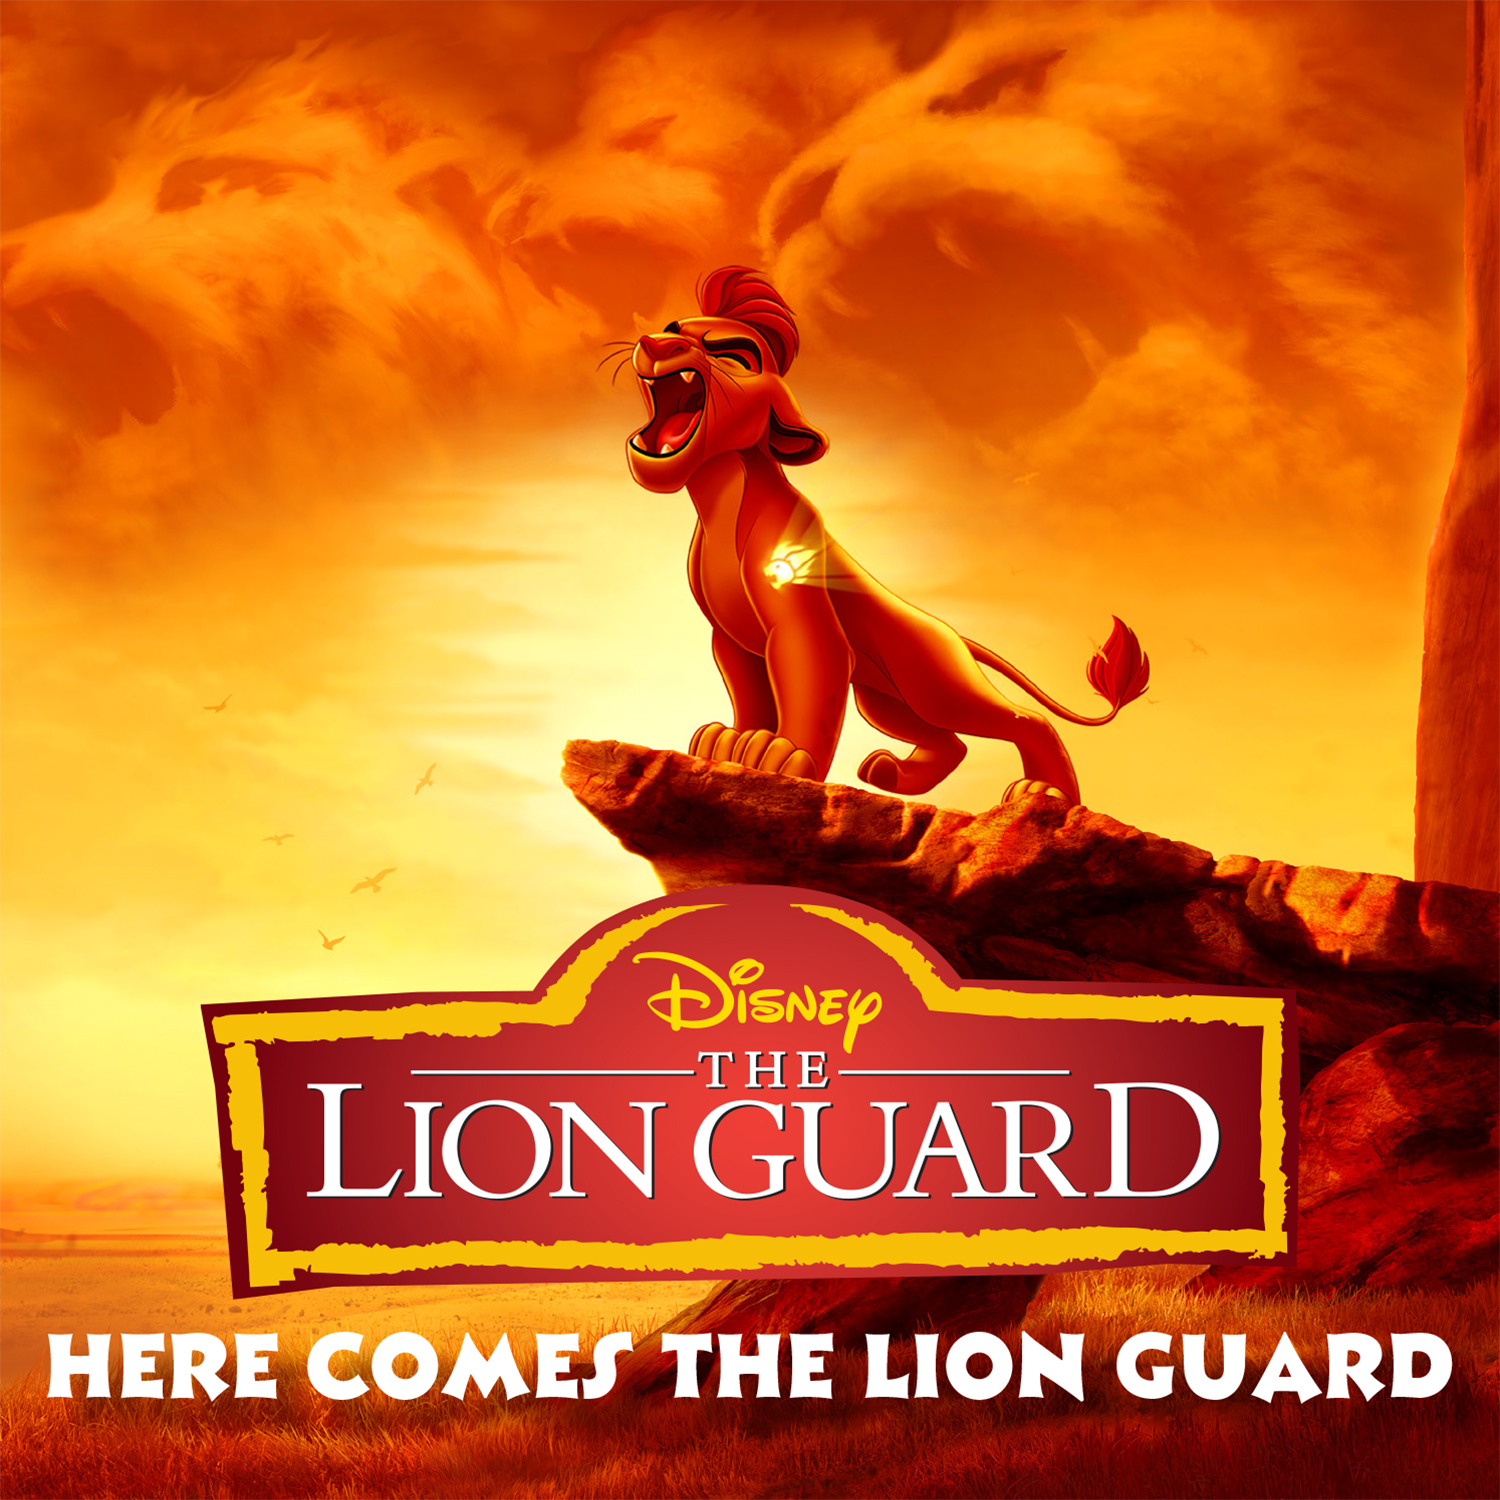 LIONGUARD_HereComesTheLionGuard